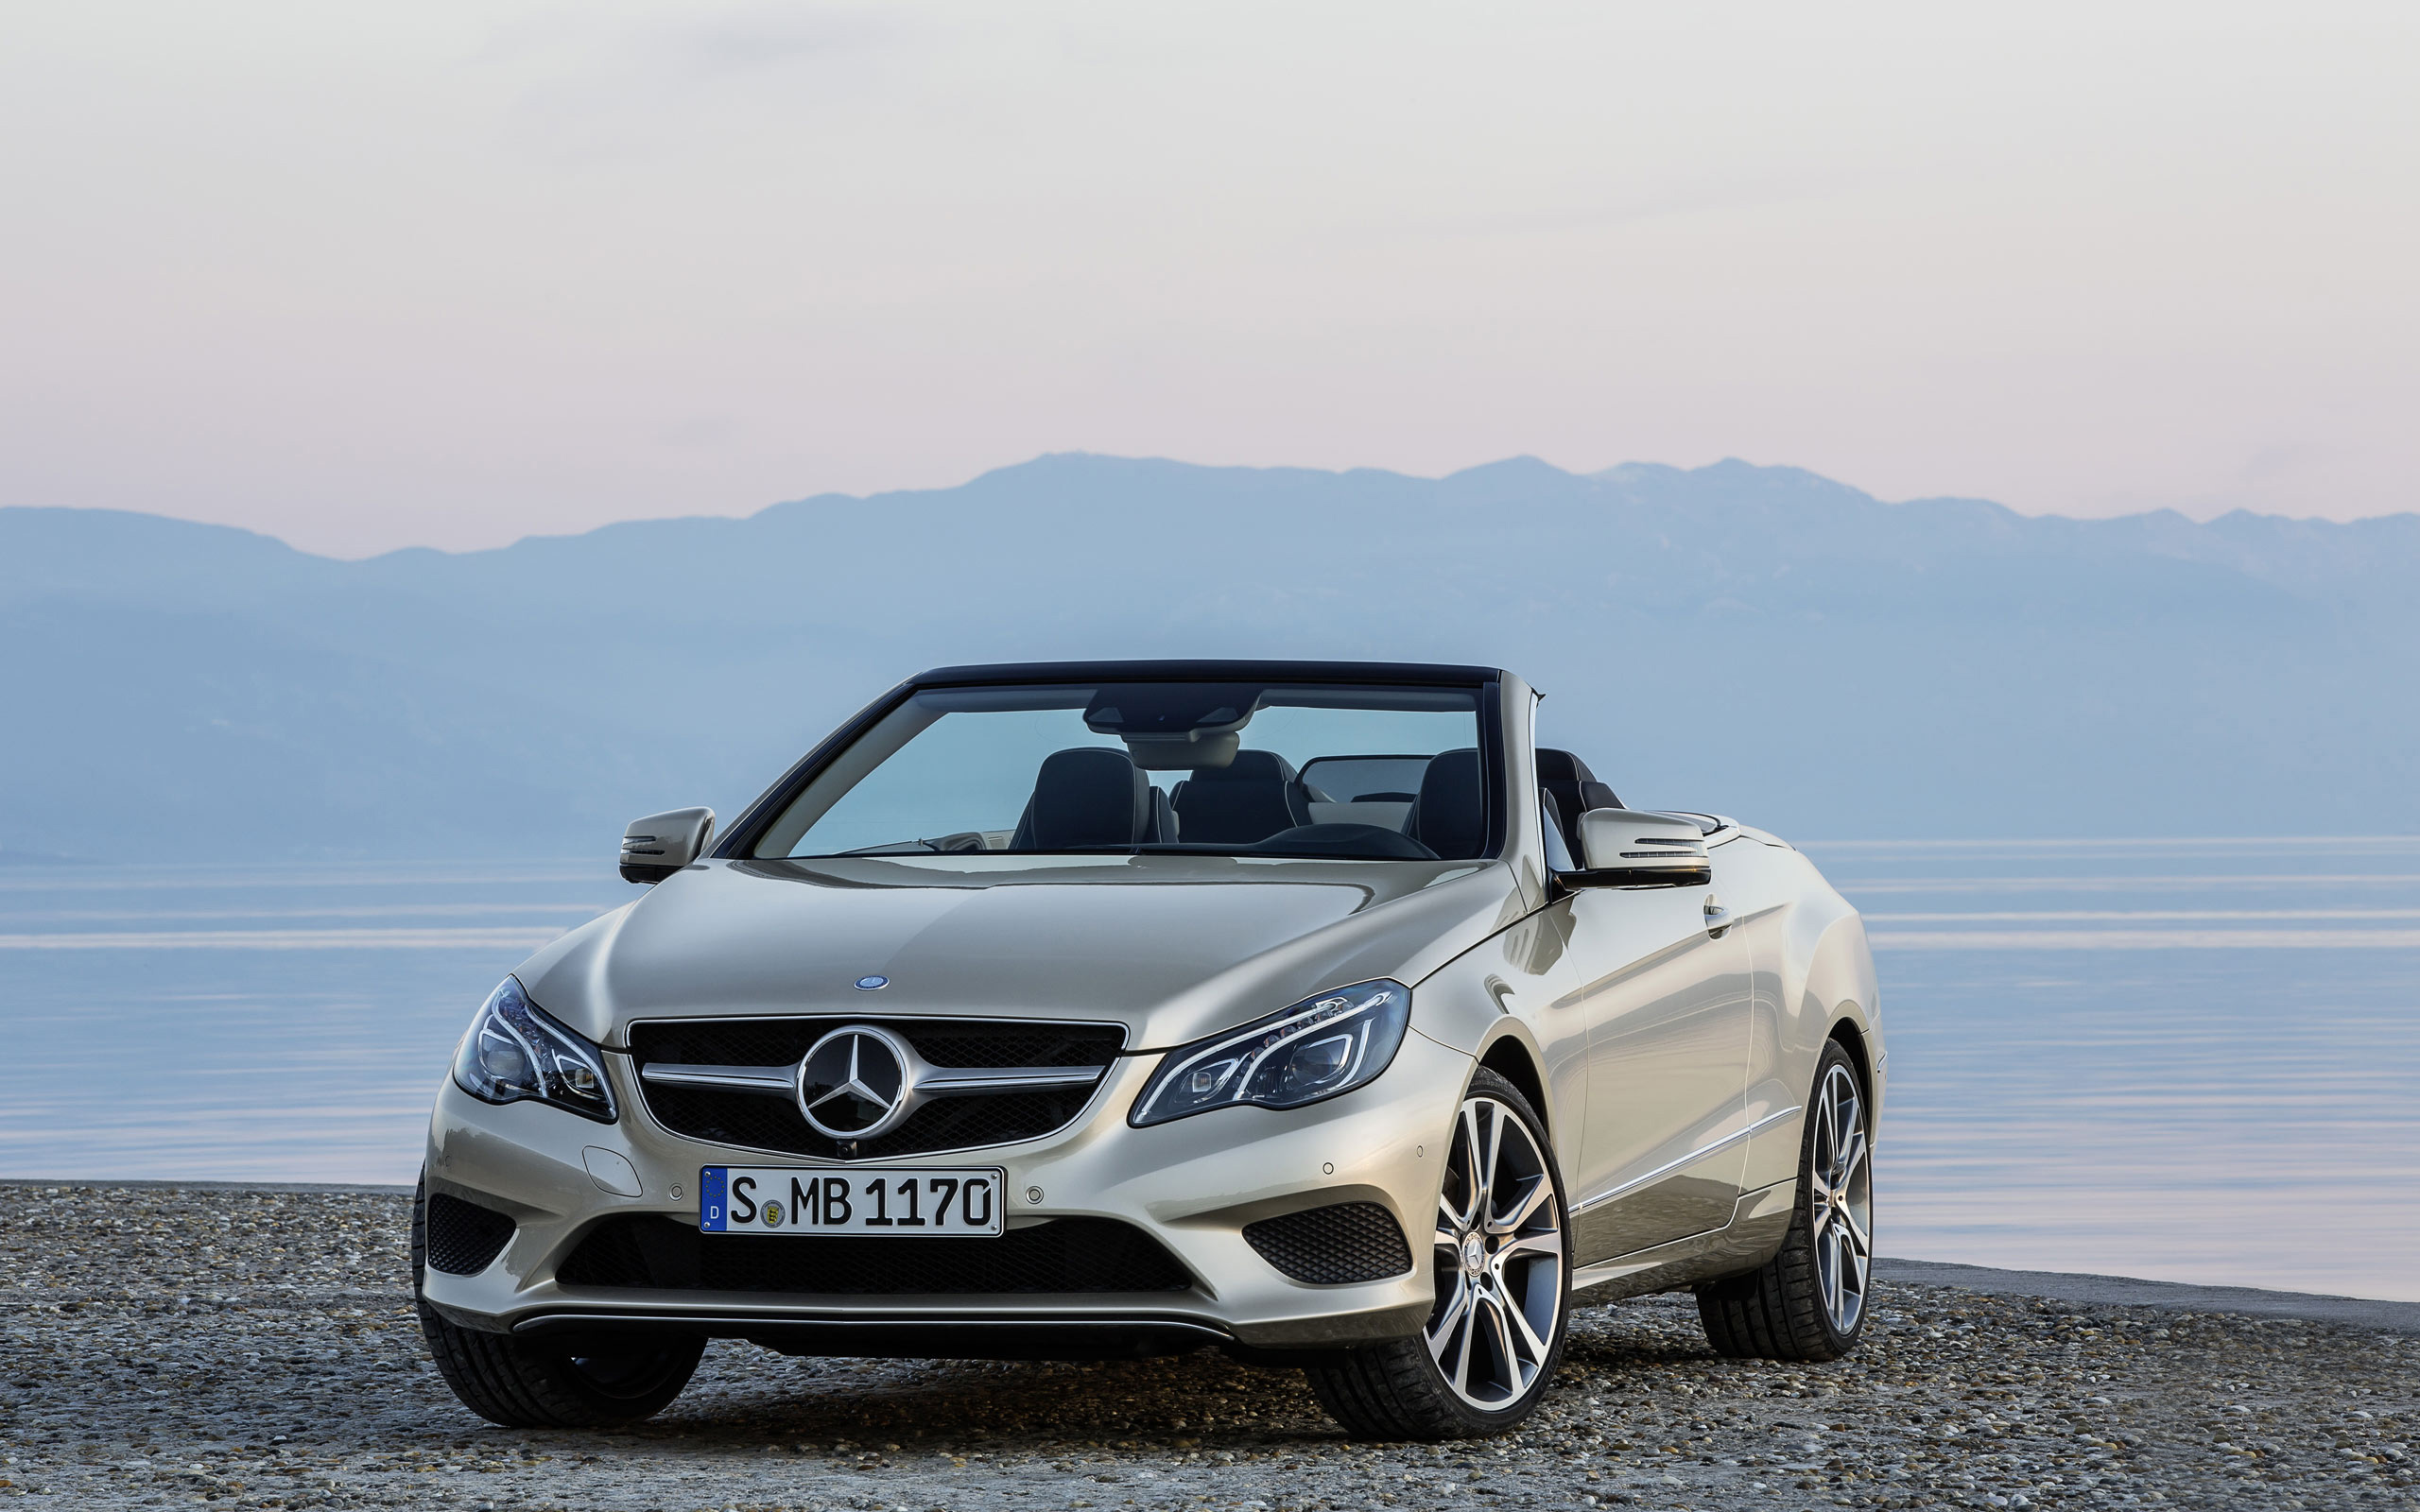 2014 mercedes benz e class cabriolet wallpaper hd car. Black Bedroom Furniture Sets. Home Design Ideas